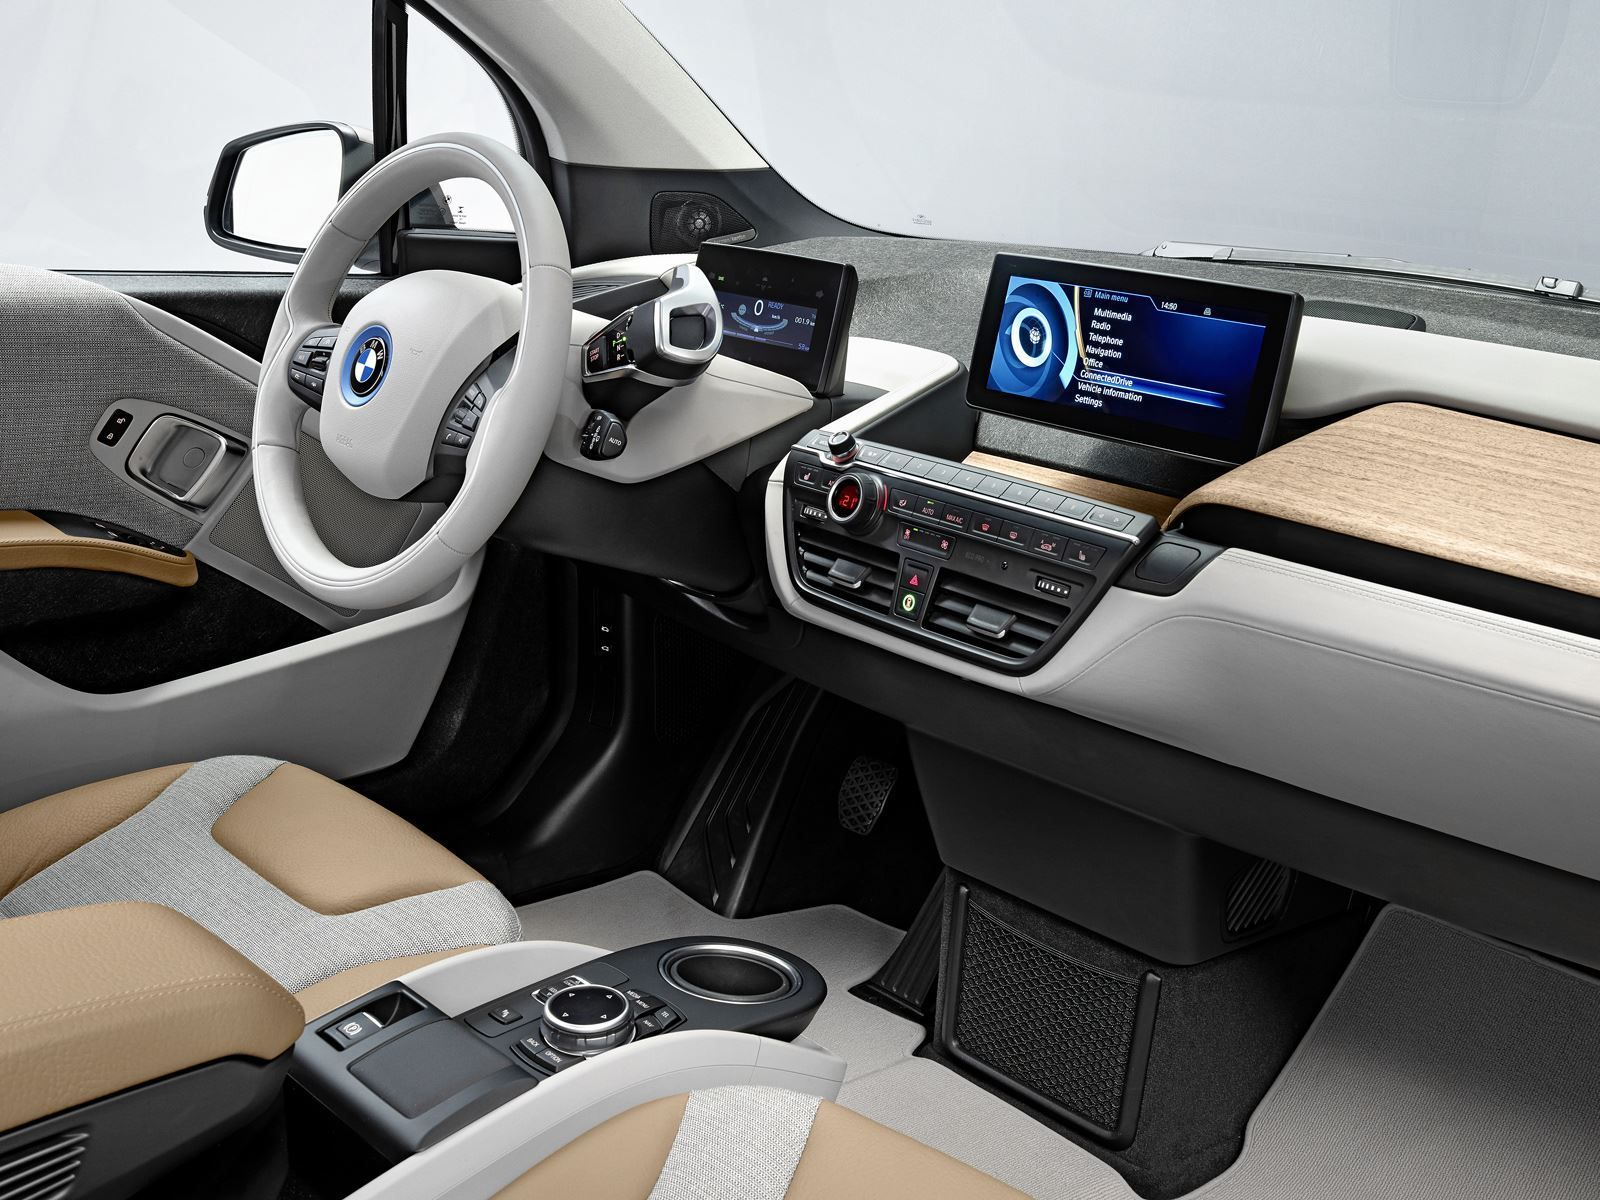 Possibility Of Bmw Working With Apple In Its In Car Operating System For Bmw I3 Bmw I3 Bmw I3 Interior Bmw I3 Electric